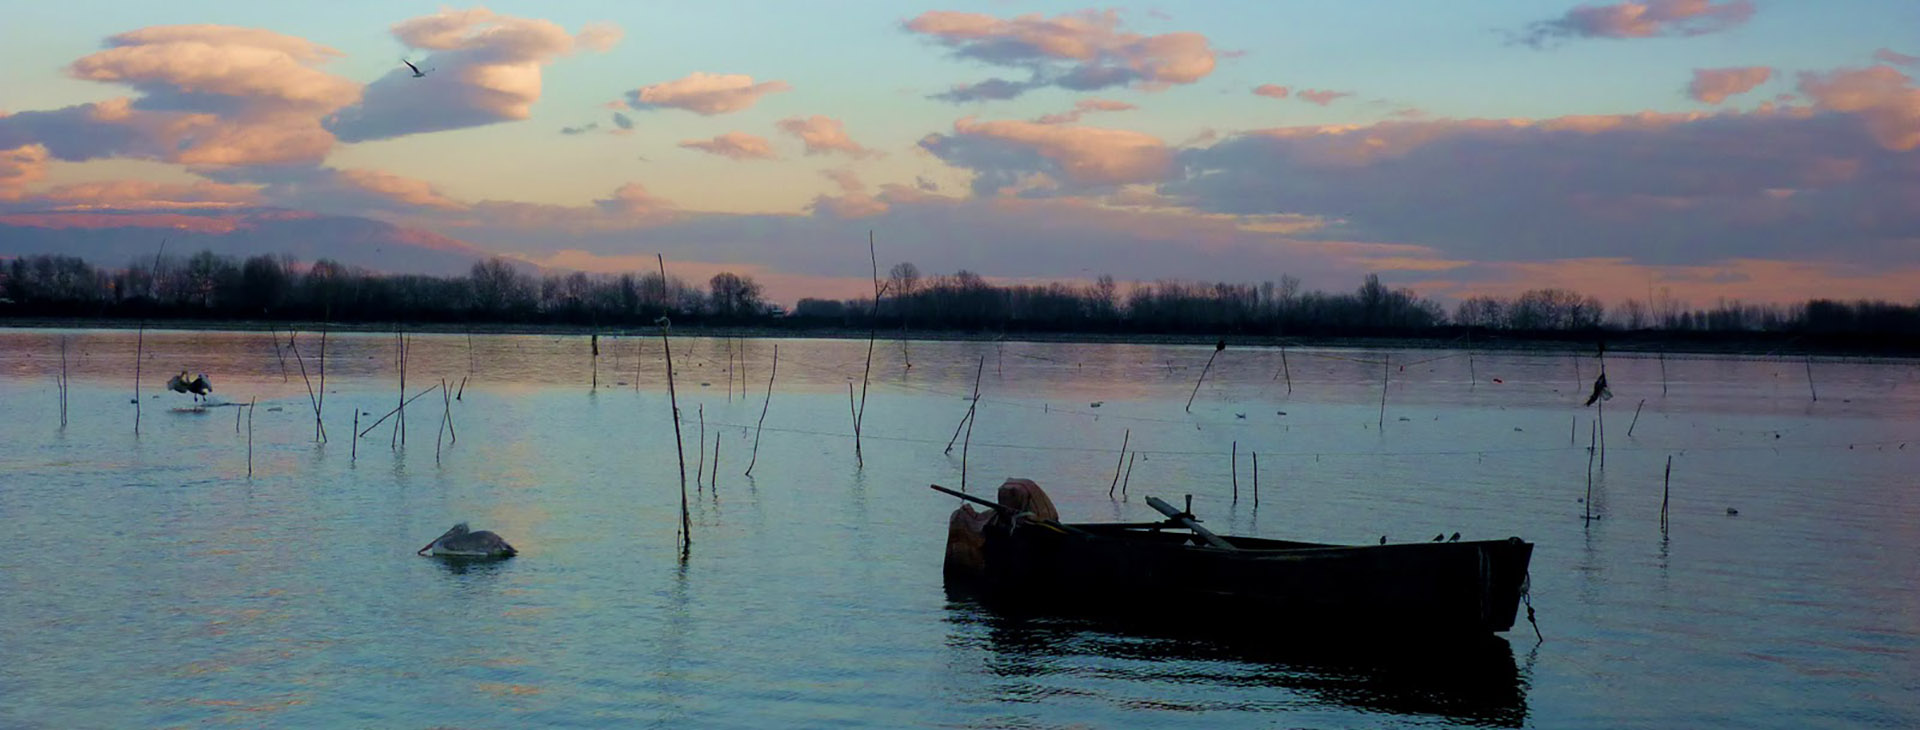 Kerkini lake, Serres